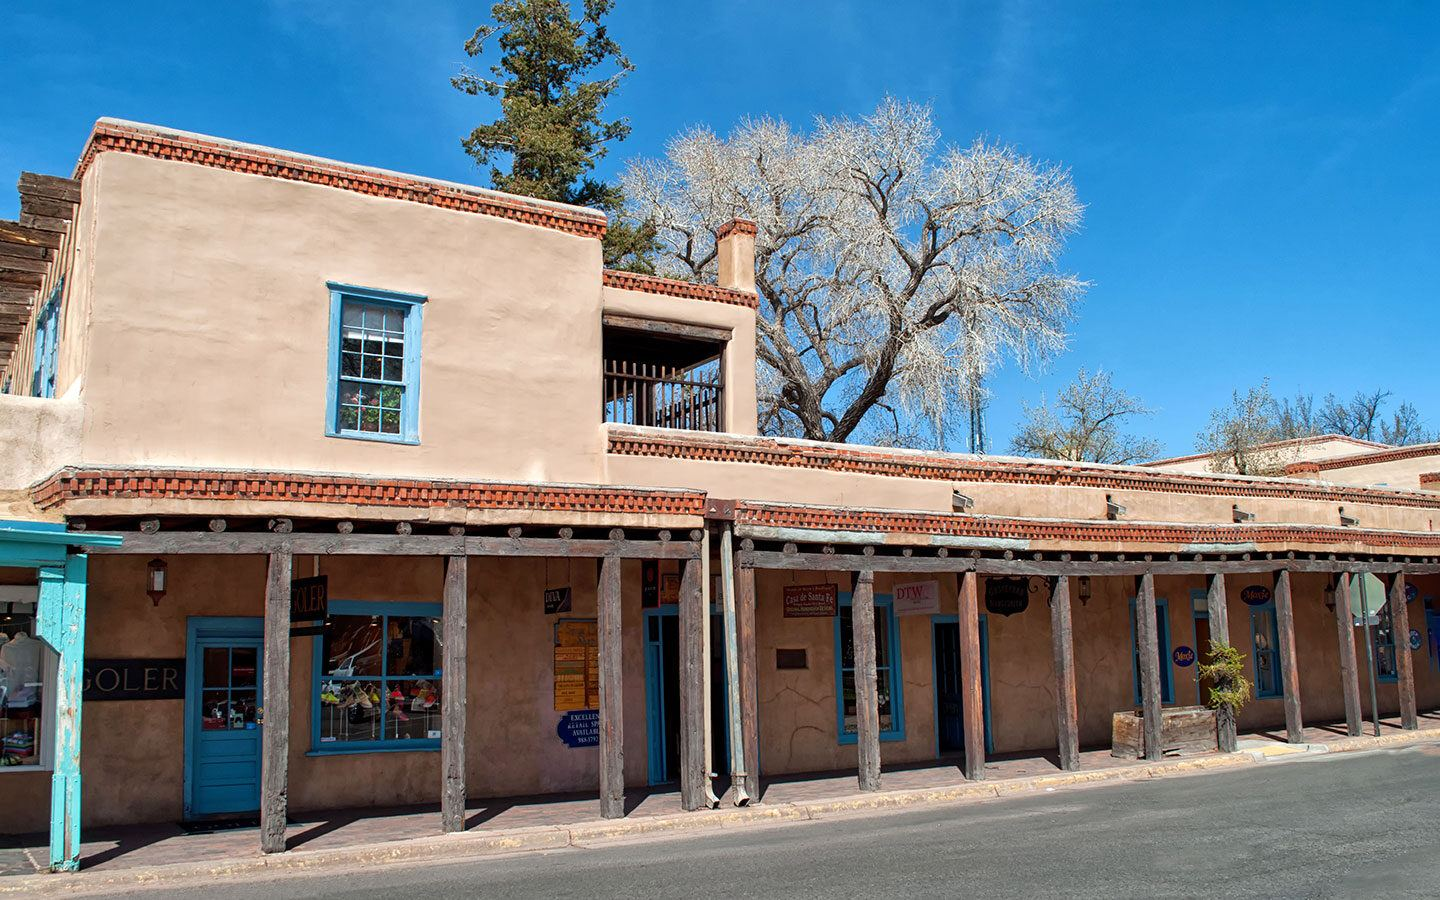 One day in Santa Fe, New Mexico: A 24-hour itinerary